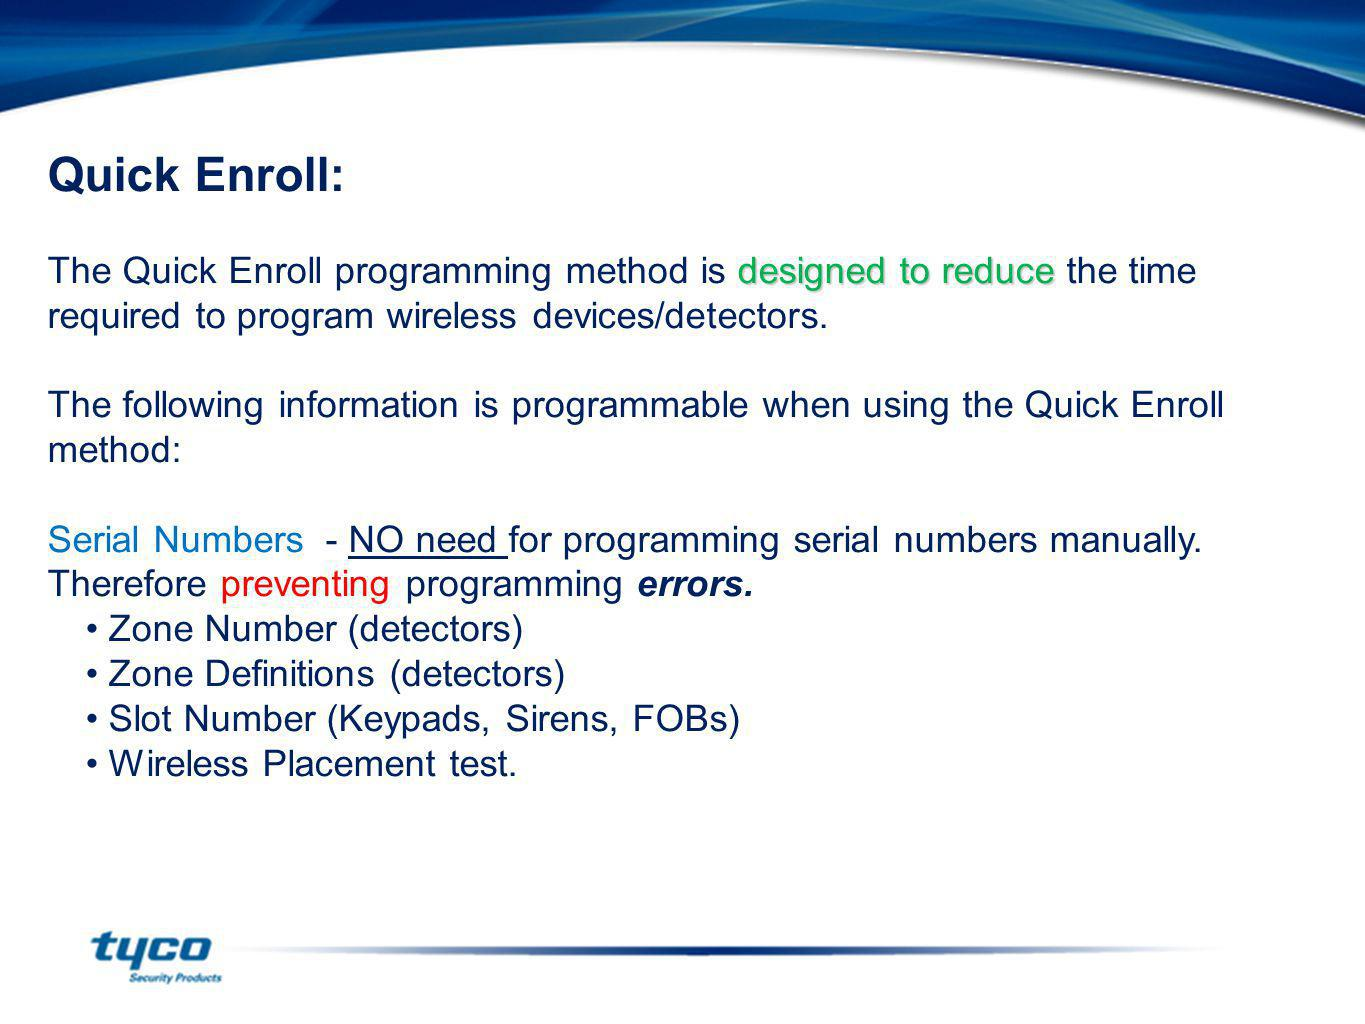 Quick Enroll: The Quick Enroll programming method is designed to reduce the time required to program wireless devices/detectors.